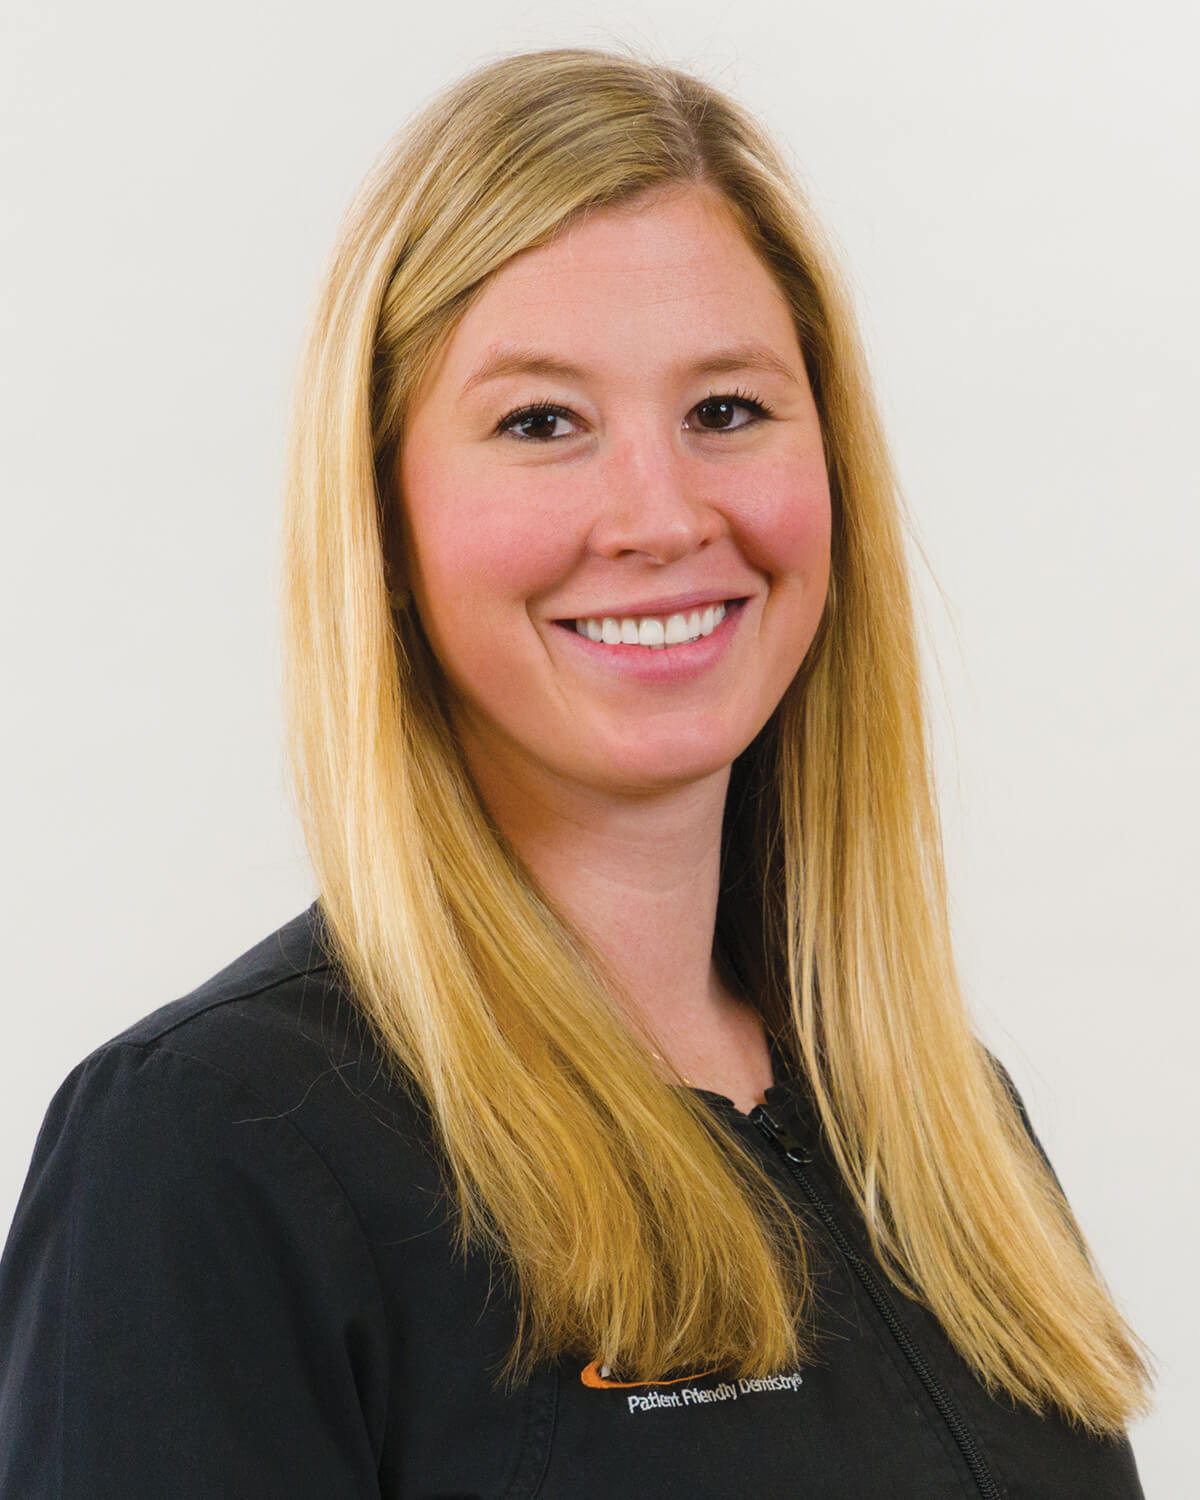 Dr. Caitlin Ferguson, DMD | Dental Care in Mishawaka, IN